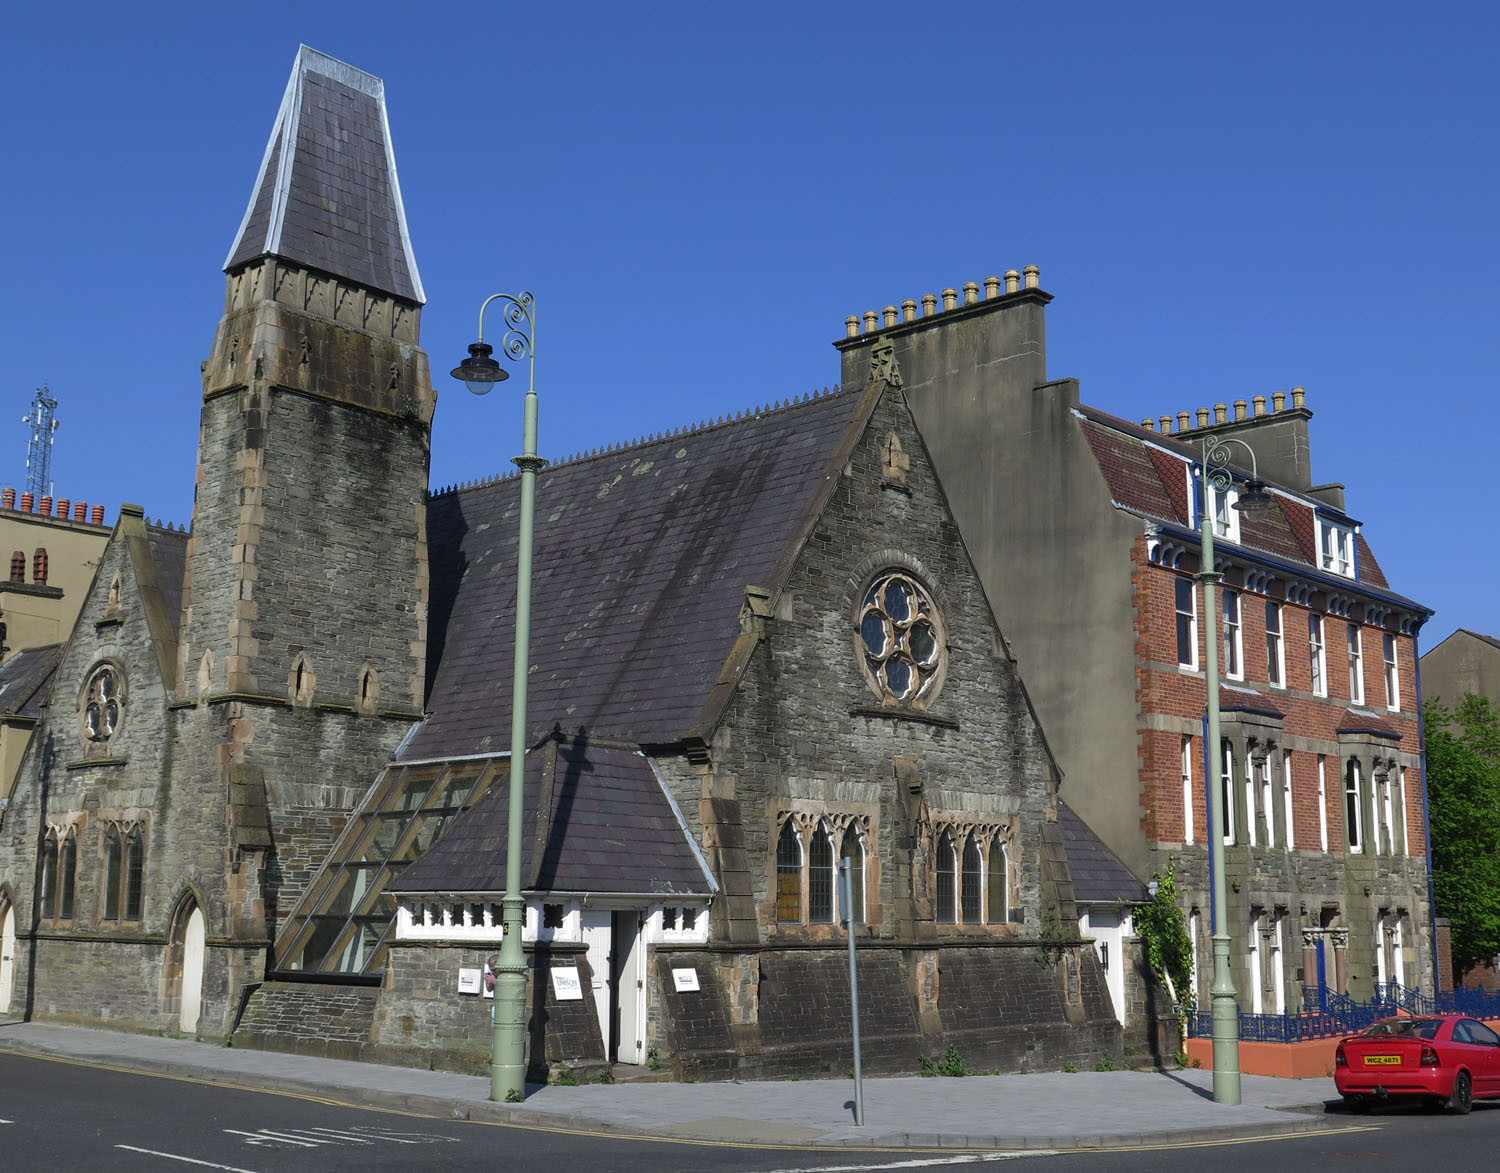 Northern-Ireland-Derry-Londonderry-Street-Scenes-Corner-Church